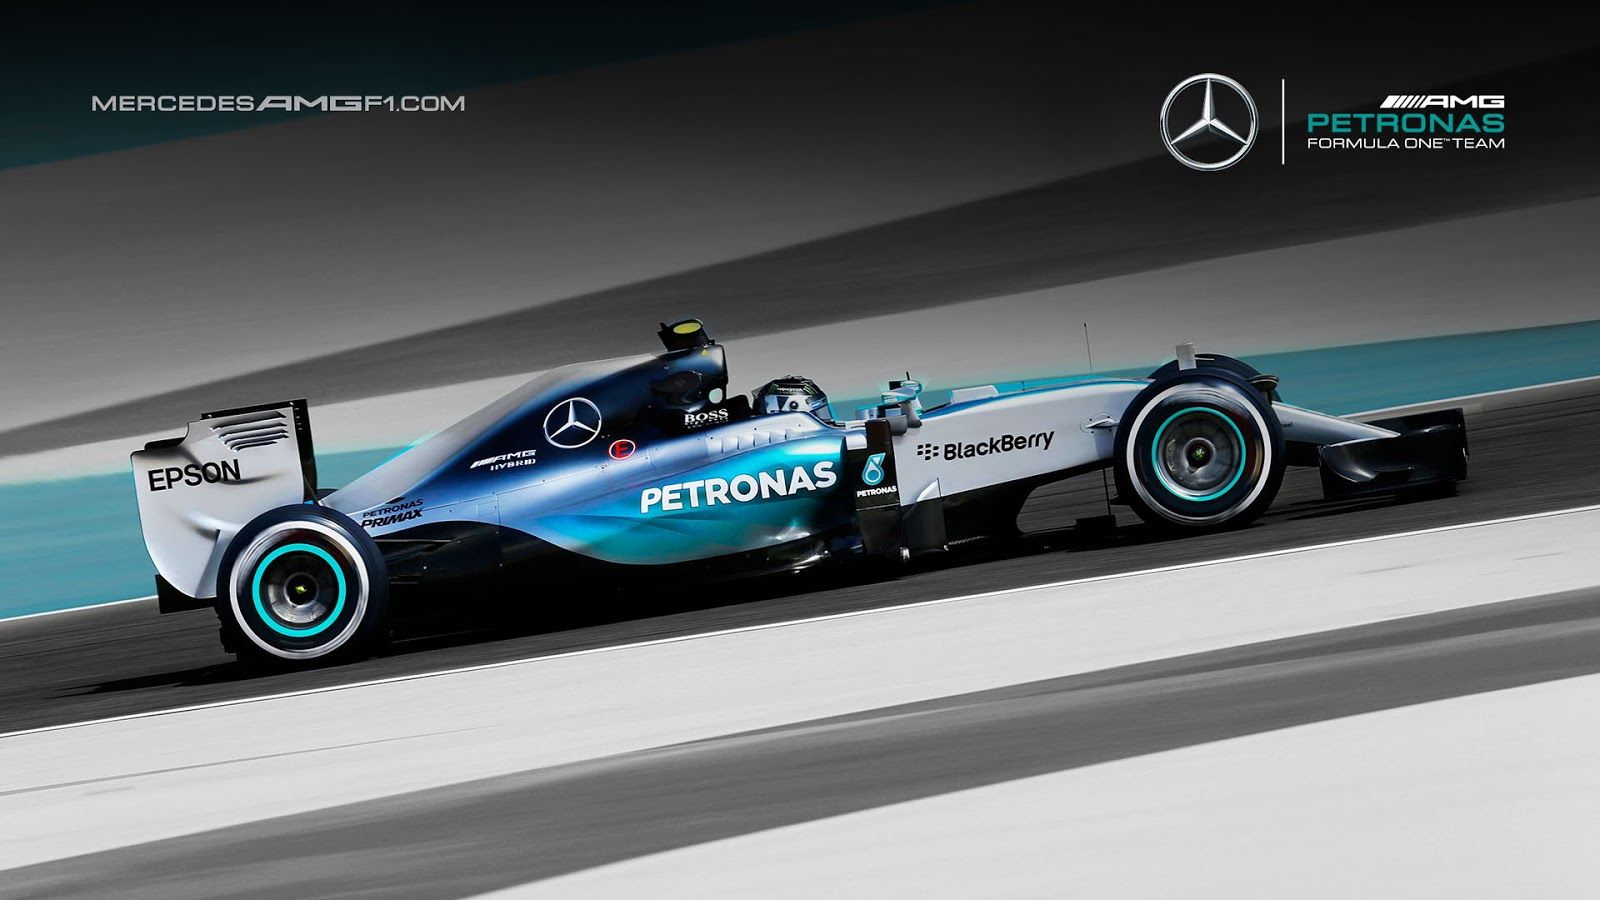 F1 mercedes wallpaper desktop background c5m